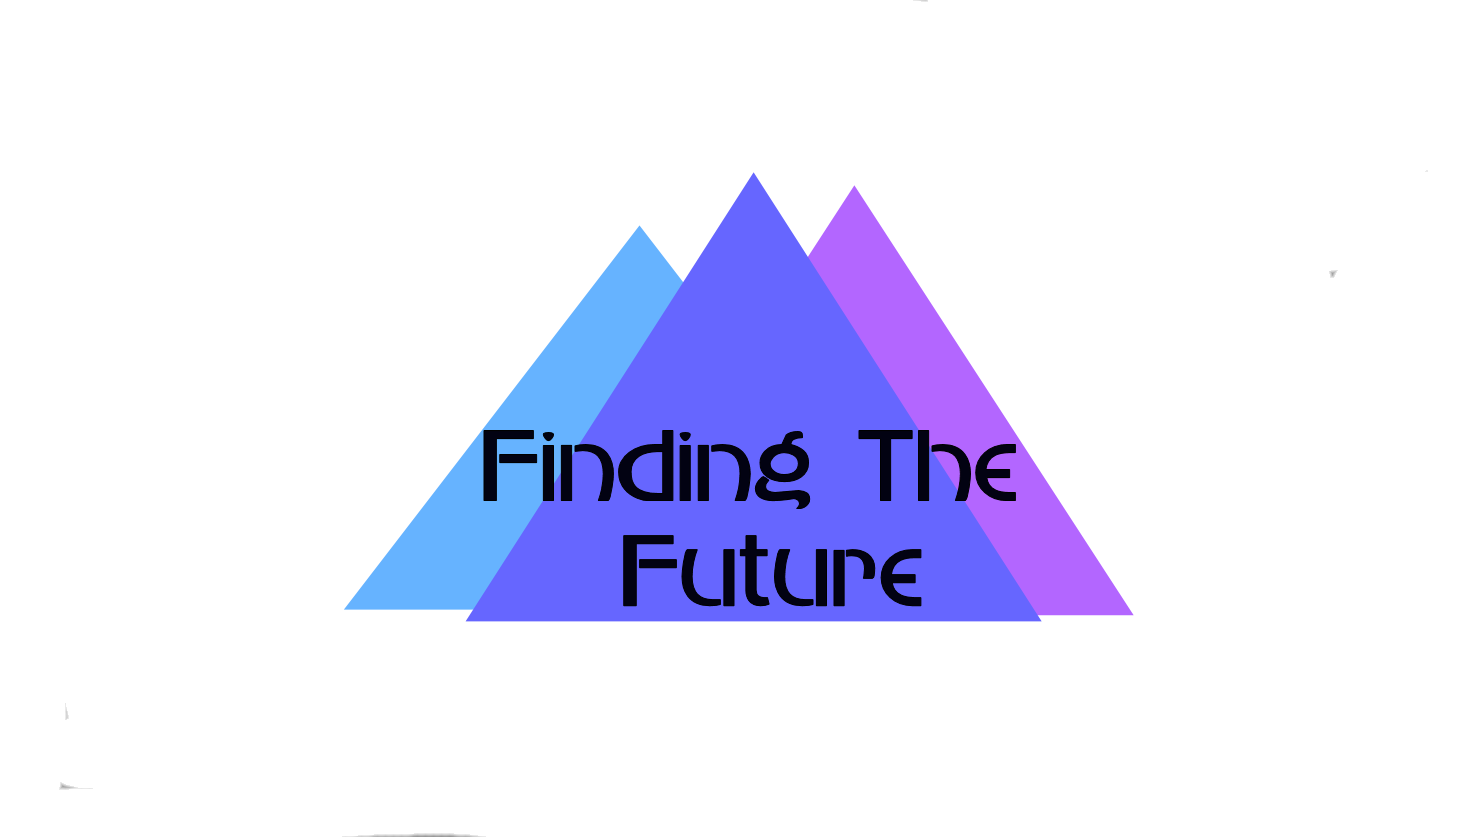 Finding The Future